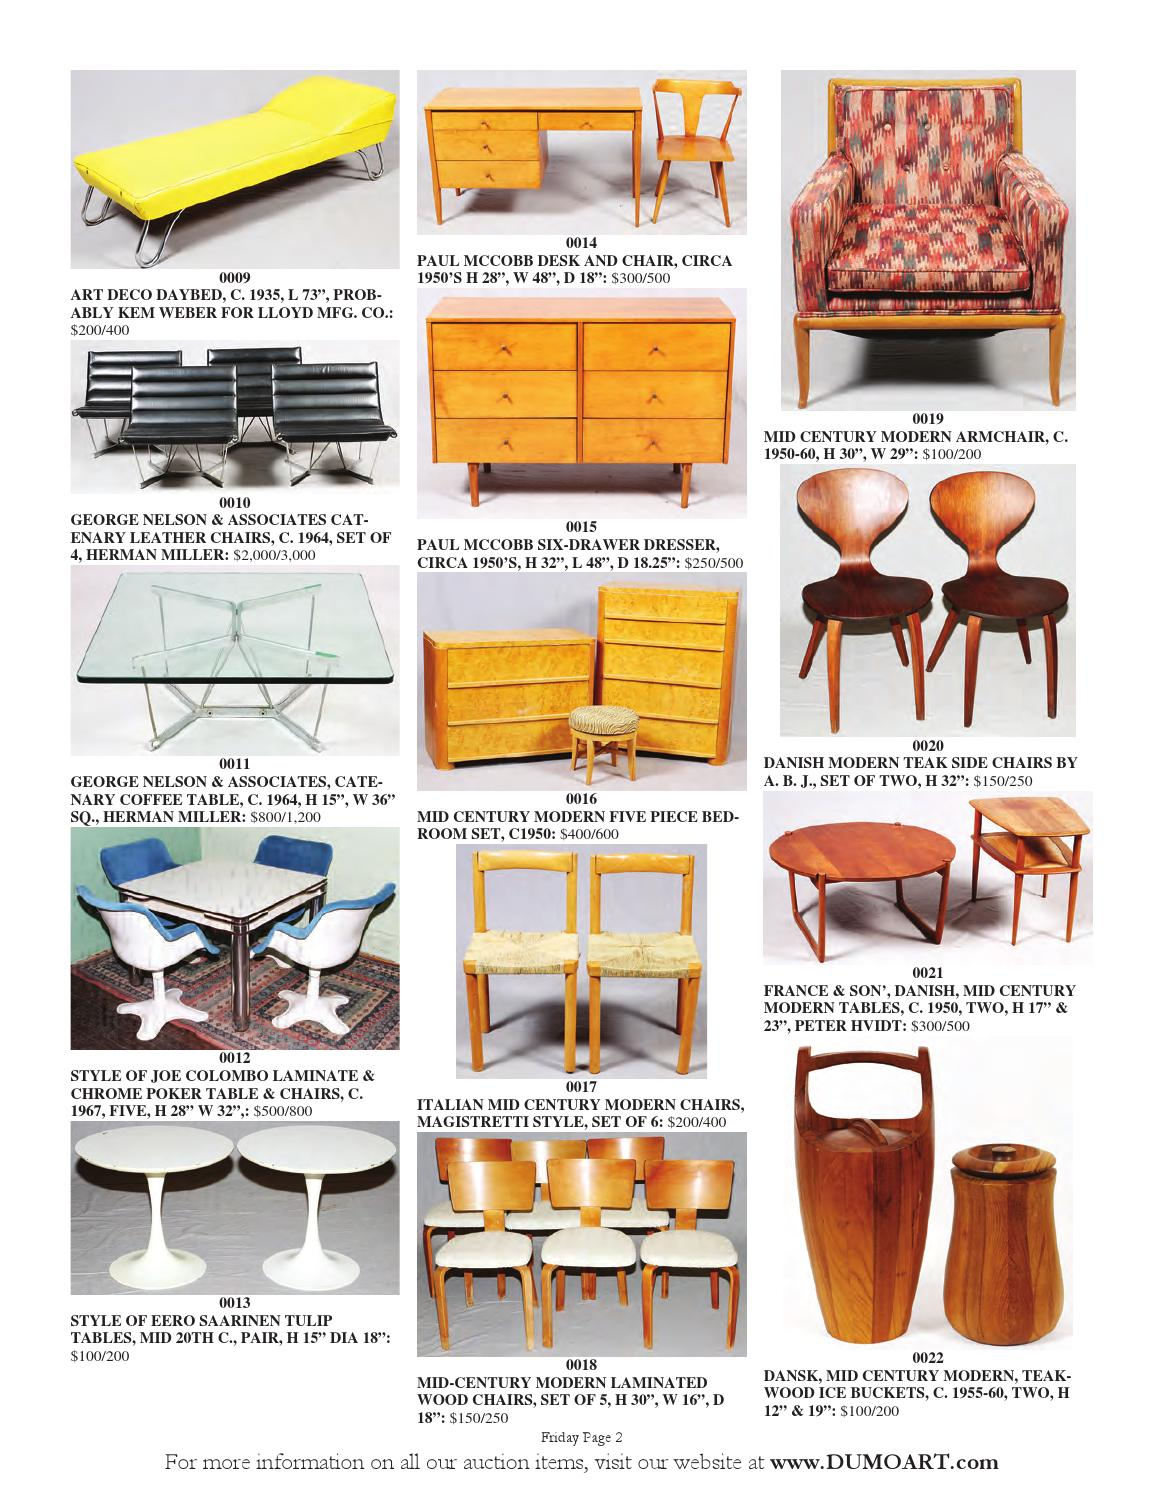 Stupendous Dumouchelle Art Gallery 2014 December 12Th 14Th Auction By Gmtry Best Dining Table And Chair Ideas Images Gmtryco